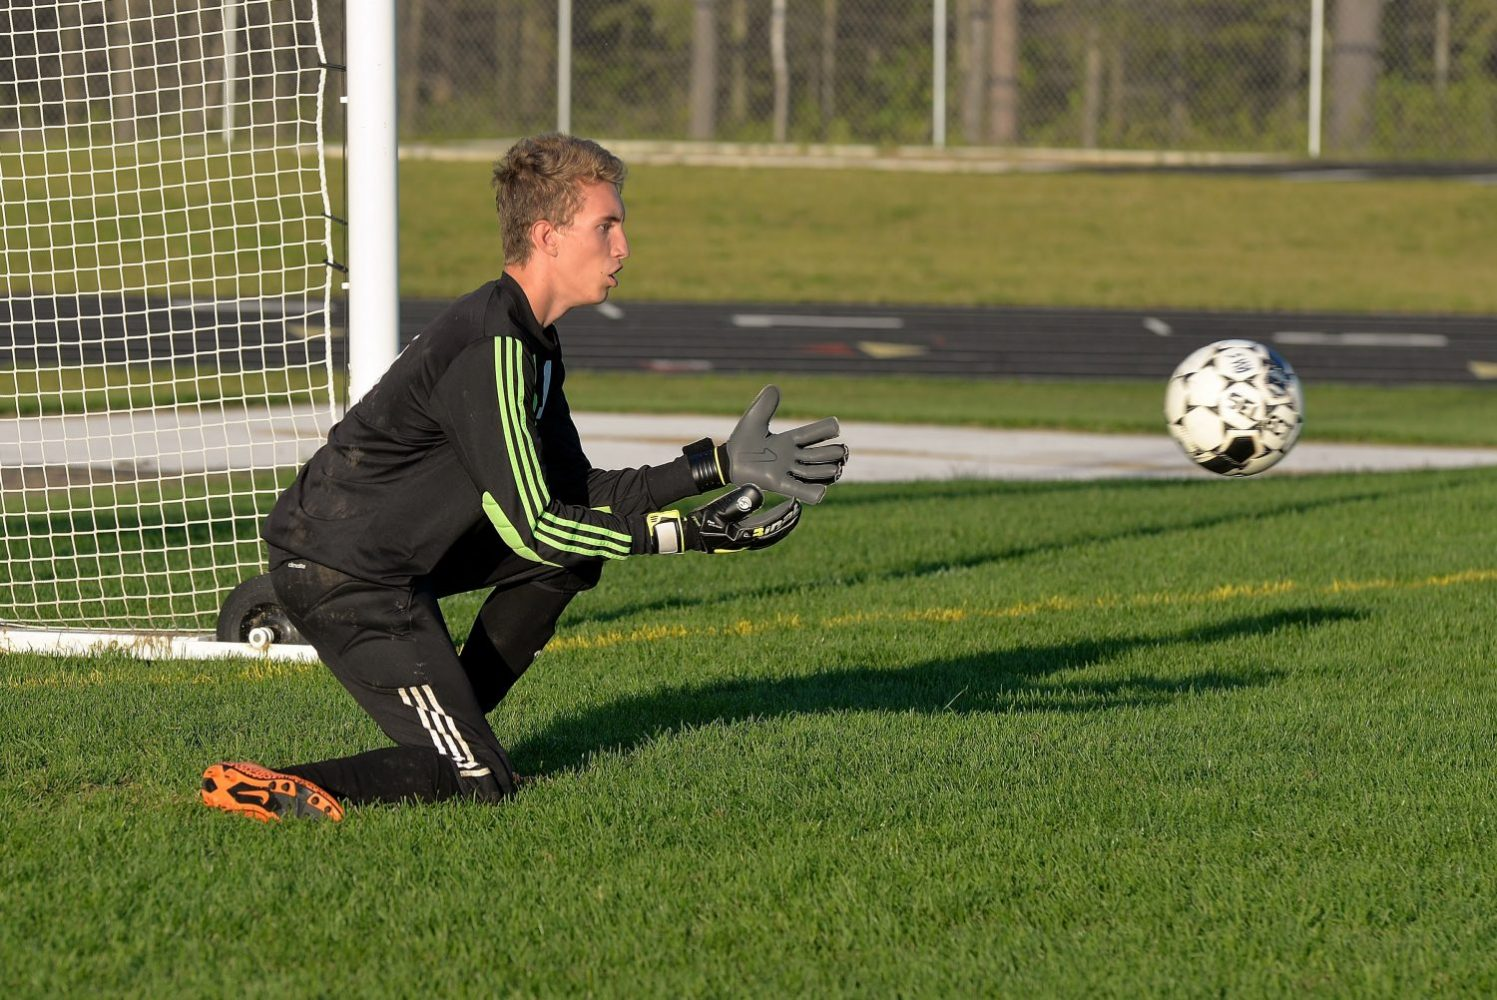 The Hodags' Josh Randolph makes a save in goal.